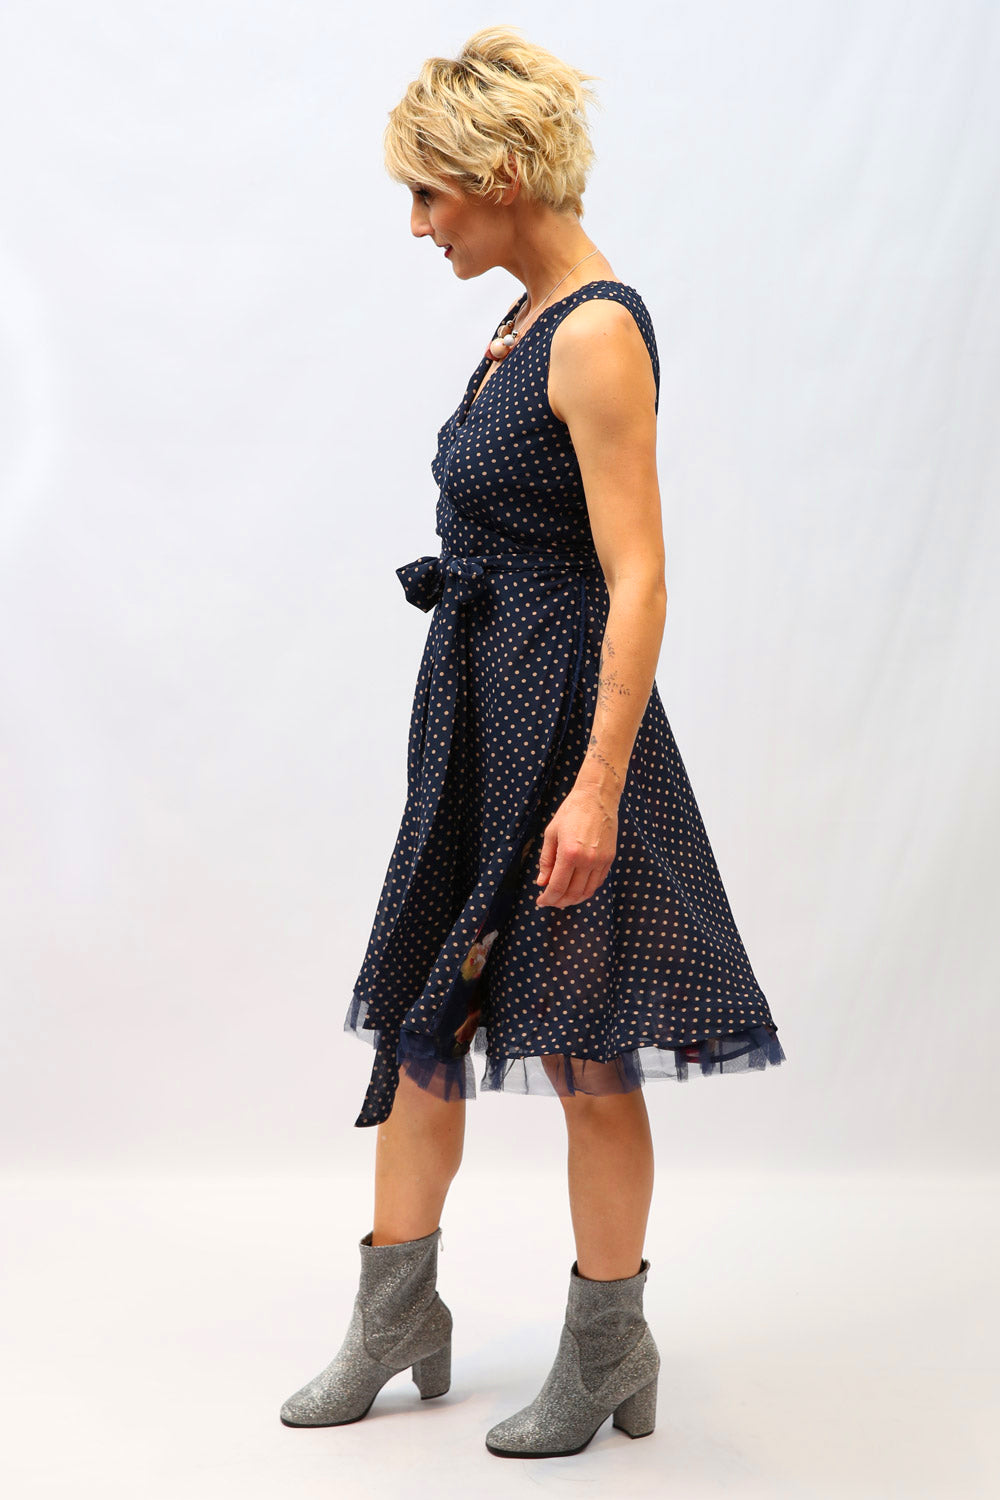 Abigail FlipIt | Wrap Dress | Addicted to Life | New Zealand Designer | New Zealand Fashion | Annah Stretton